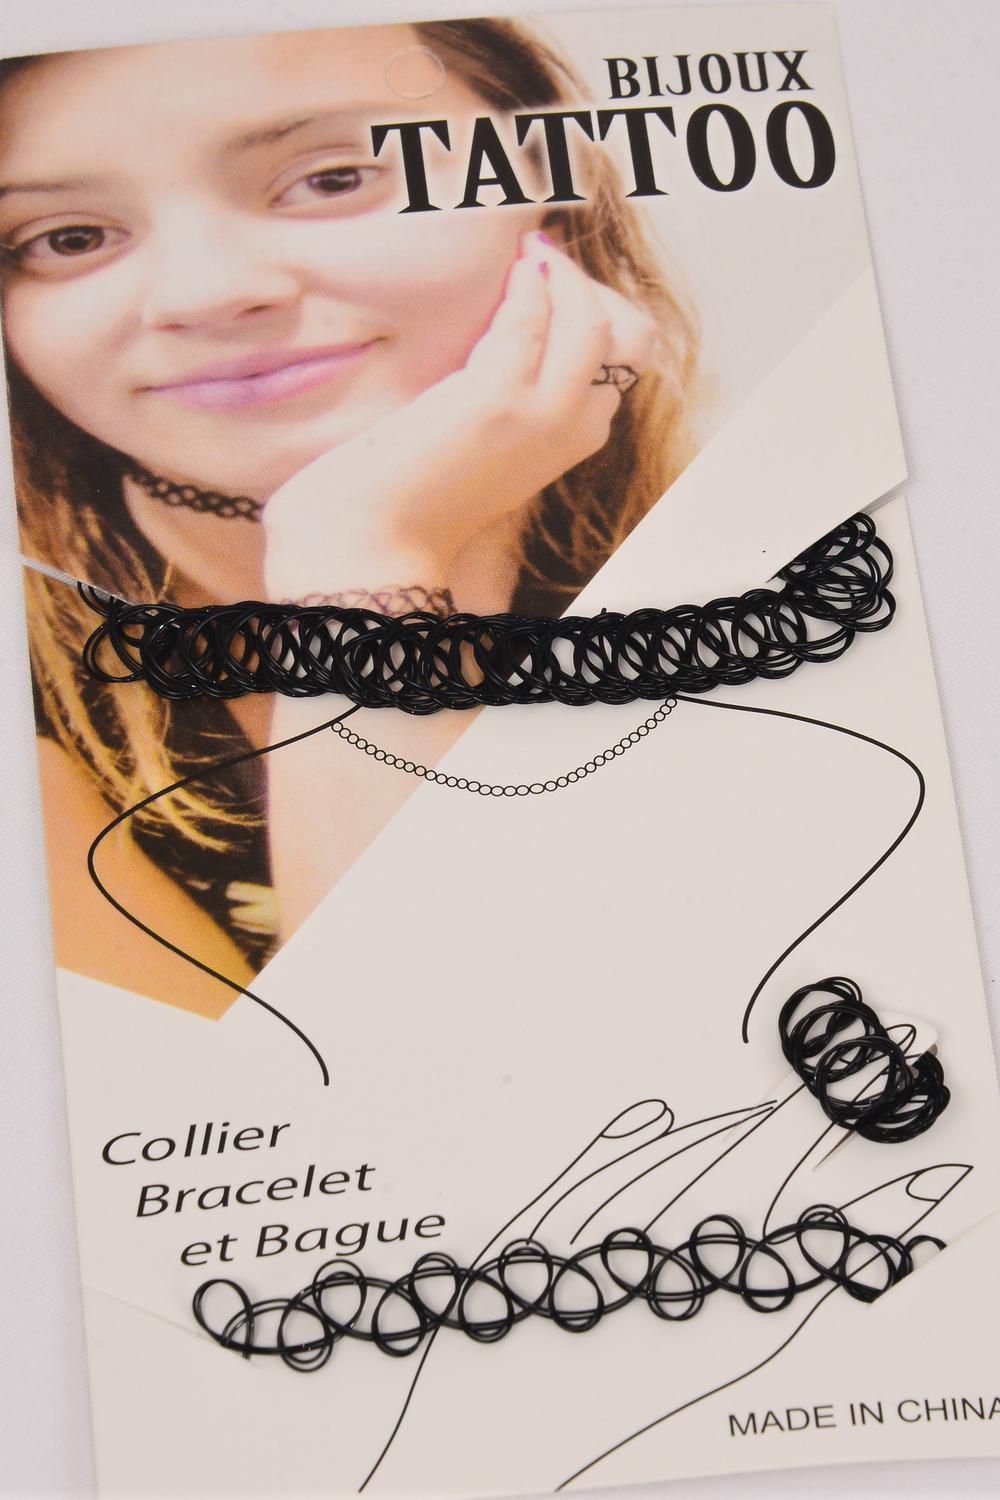 Set 3 pcs Tattoo Choker Stretch Necklace Black/SET **Black** Display Card & OPP Bag & UPC Code,3 pcs per Card,12 card=Dozen